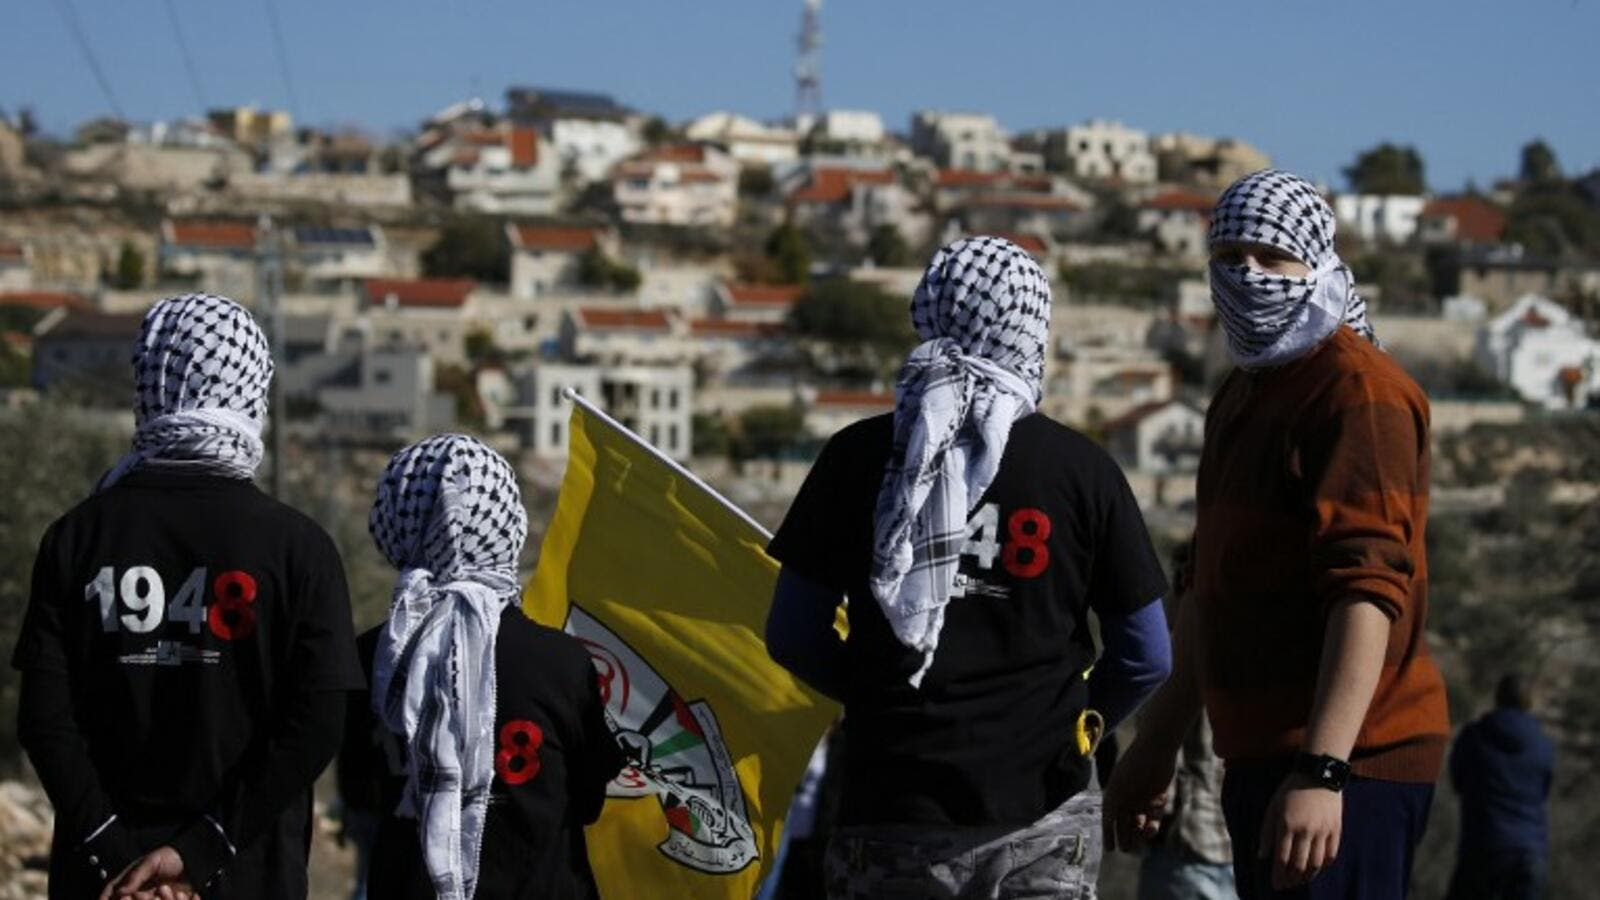 This file photo taken on December 30, 2016 shows Palestinian protestors stand facing the Israeli settlement of Qadumim (Kedumim) during clashes with Israeli security forces following a demonstration against the expropriation of Palestinian land by Israel in the village of Kfar Qaddum, near Nablus, in the occupied West Bank. (AFP/Jaafar Ashtiyeh)